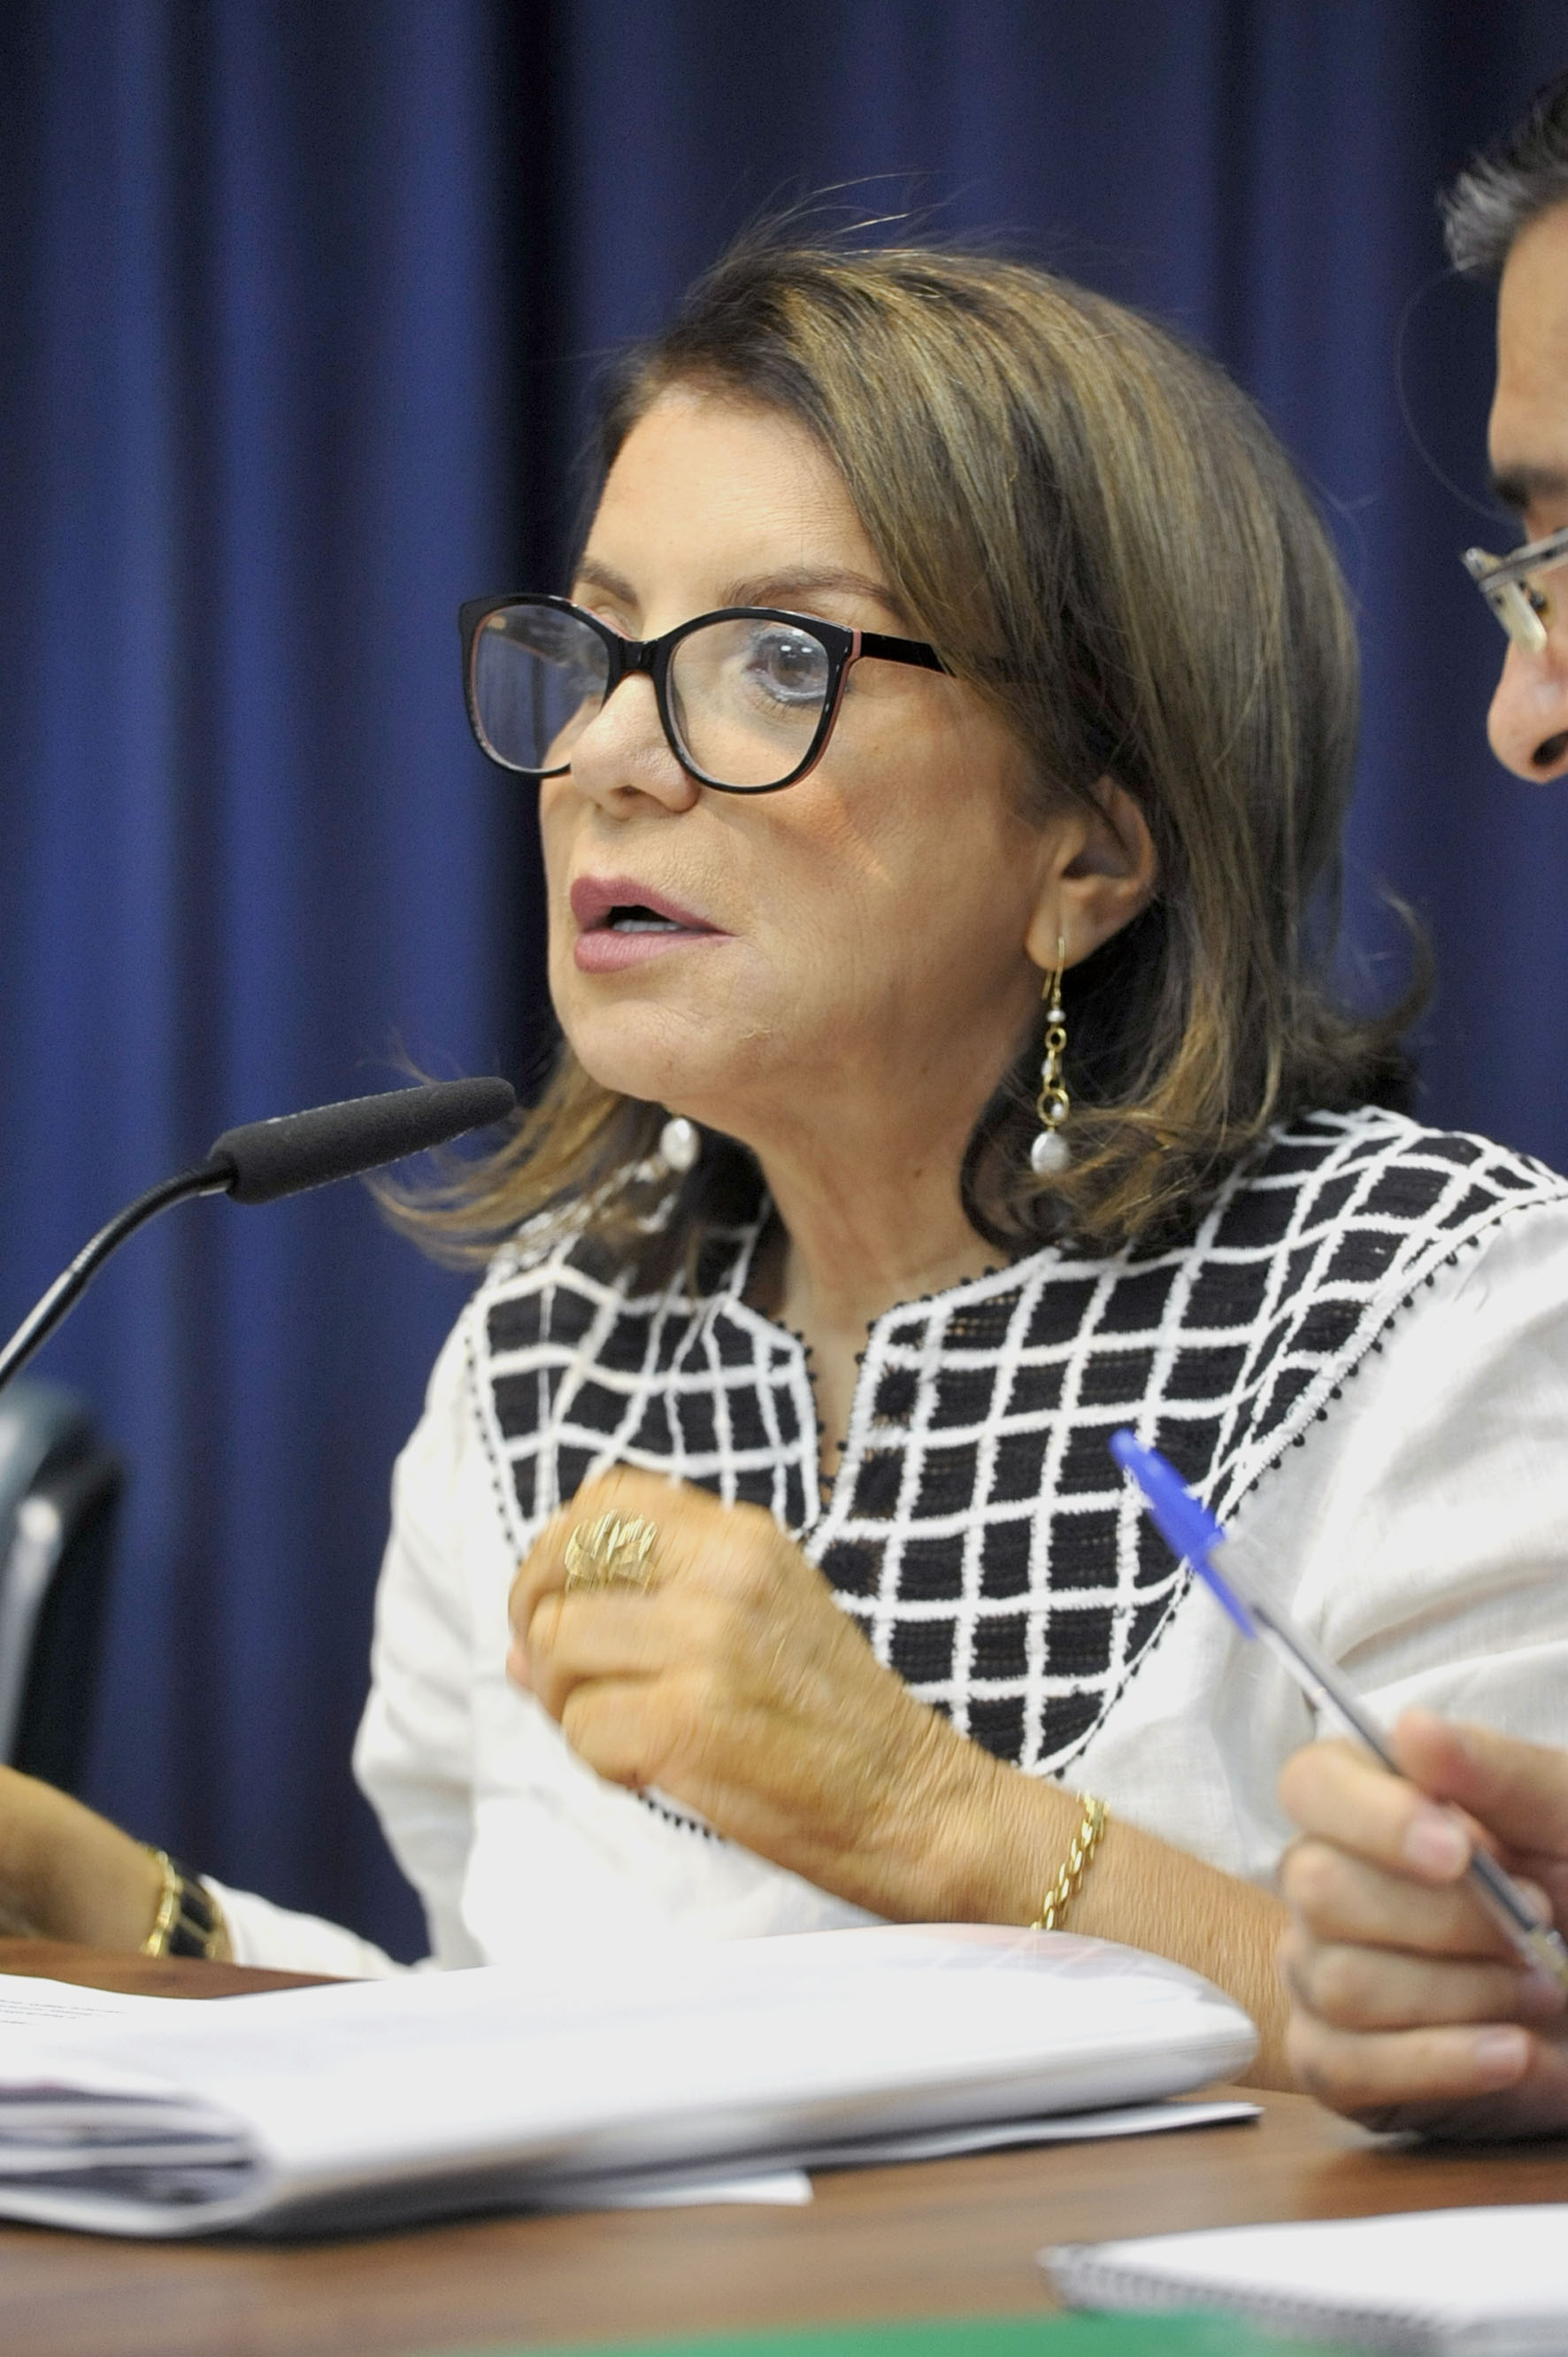 Professora Bebel <a style='float:right' href='https://www3.al.sp.gov.br/repositorio/noticia/N-04-2019/fg233414.jpg' target=_blank><img src='/_img/material-file-download-white.png' width='14px' alt='Clique para baixar a imagem'></a>